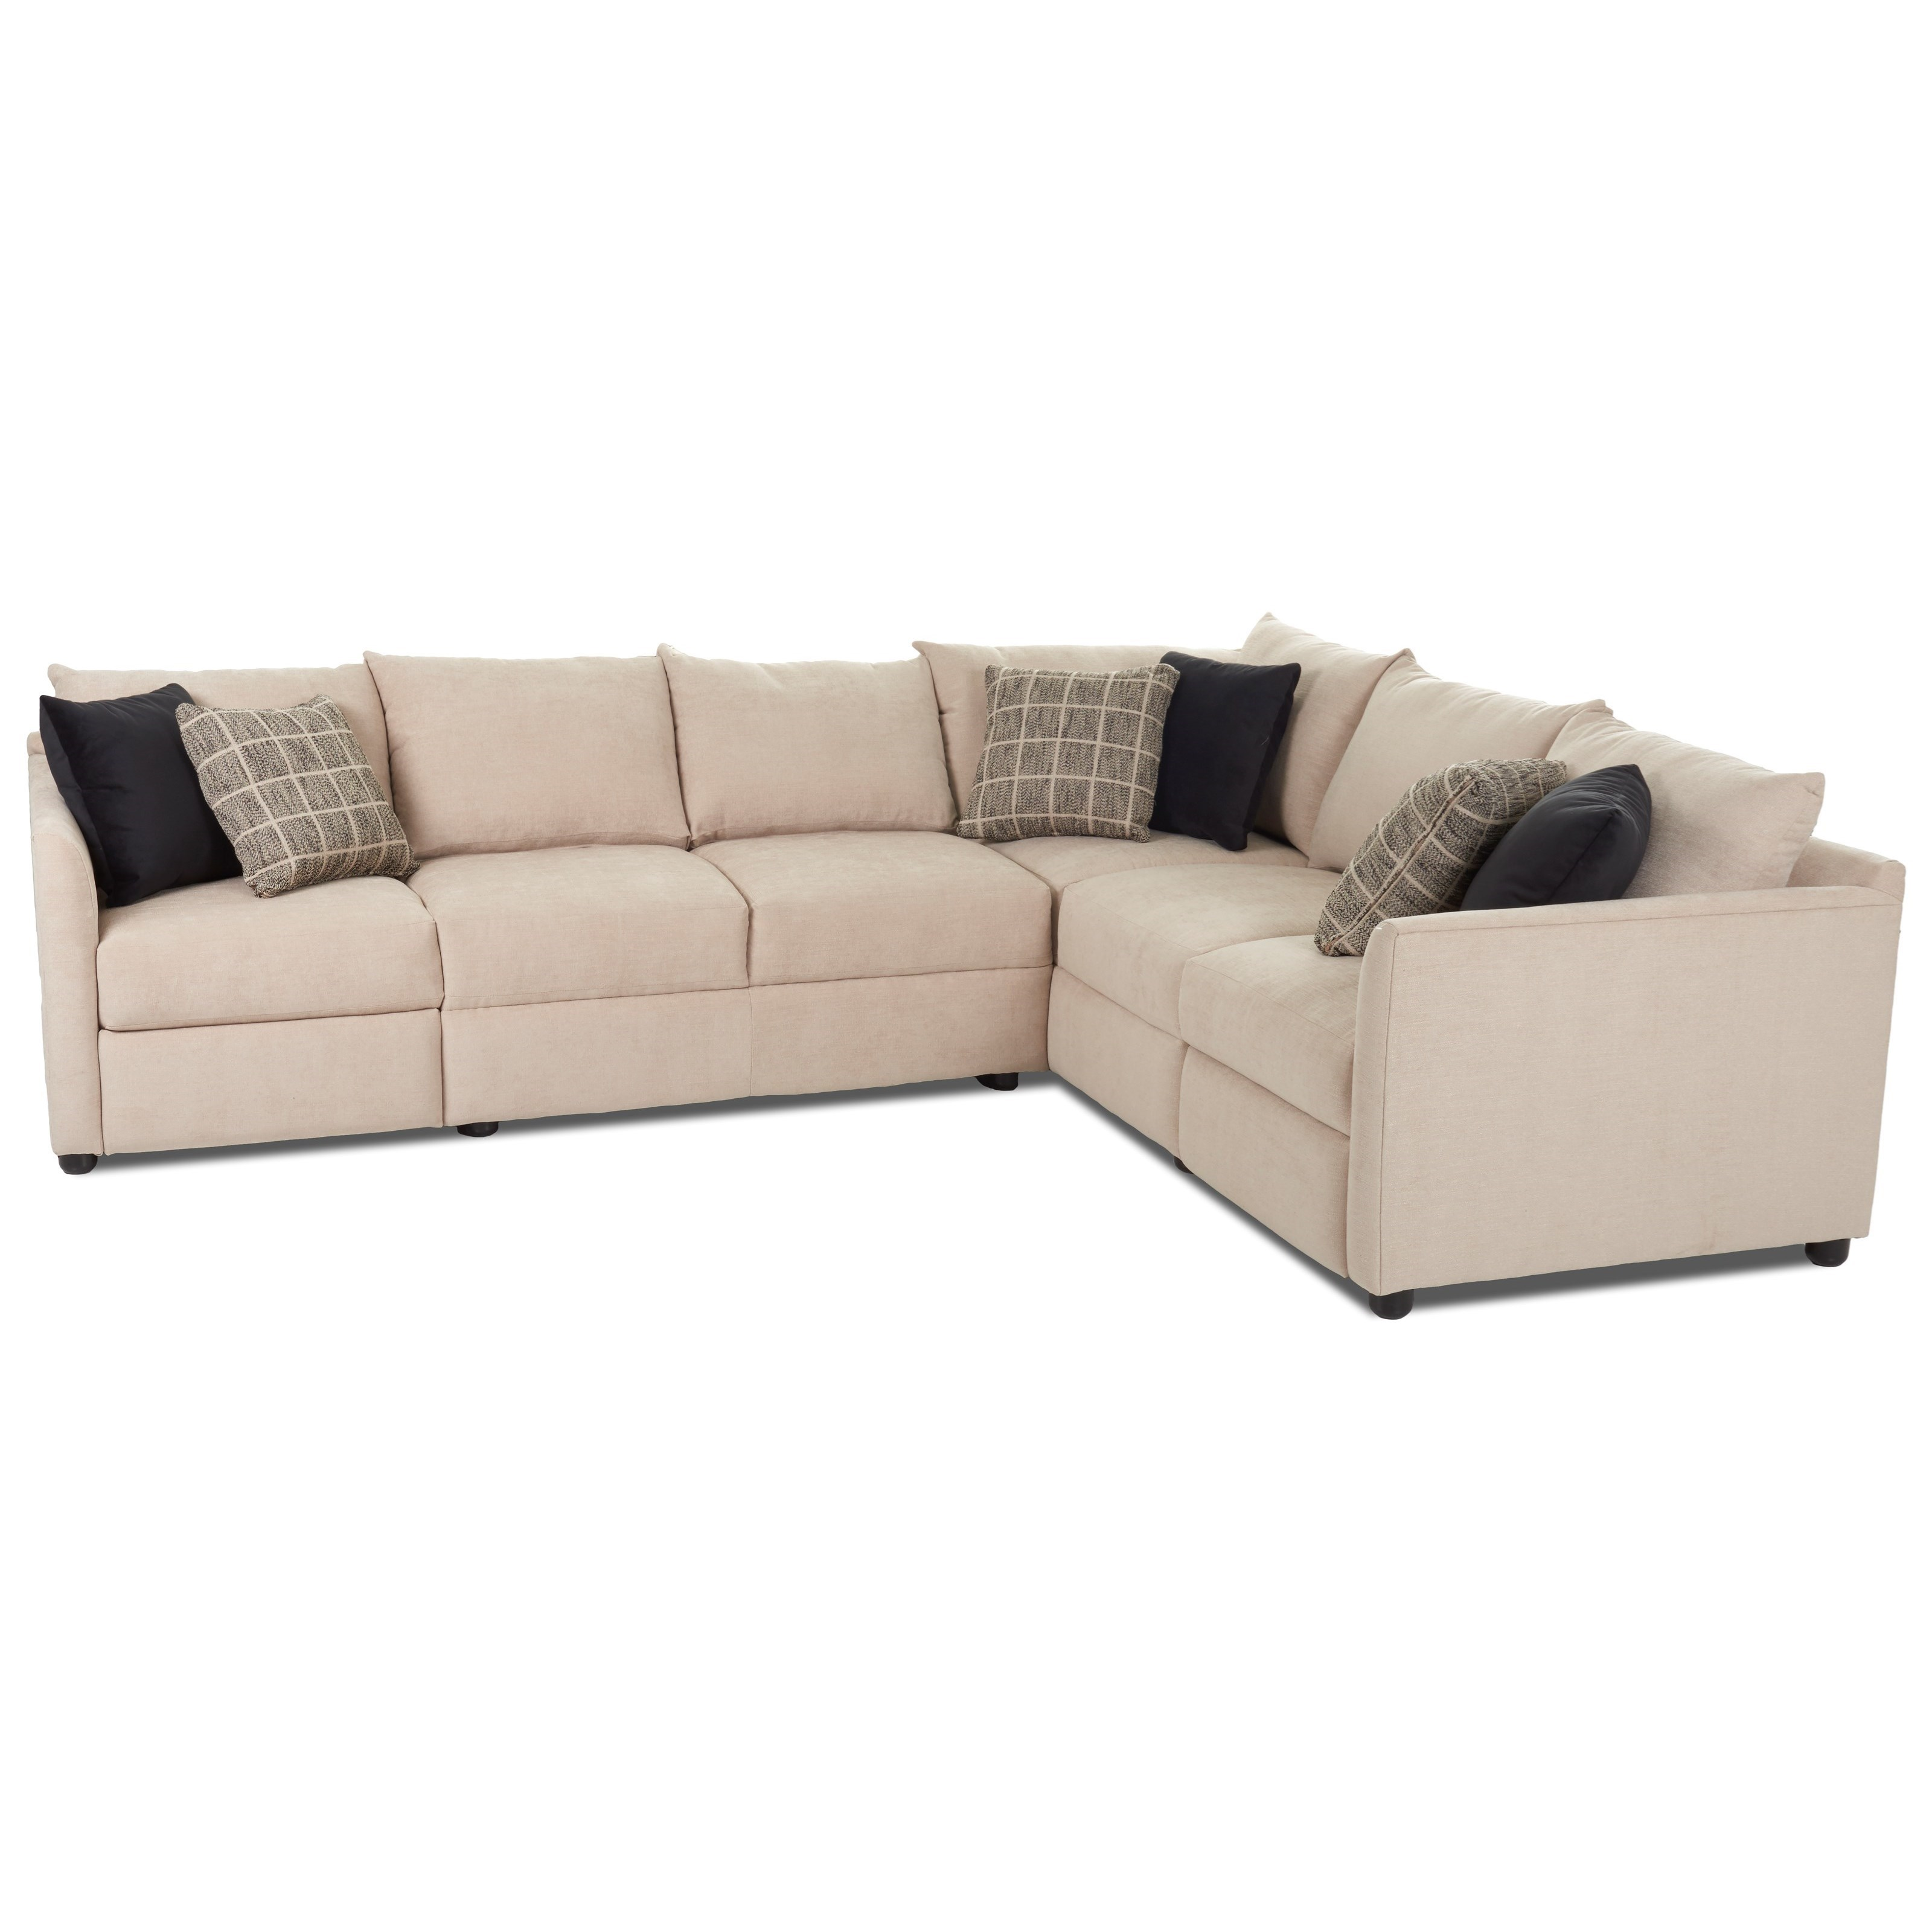 Trisha Yearwood Home Collection By Klaussner Atlanta2 Pc Power Hybrid  Reclining Sectional Sofa ...